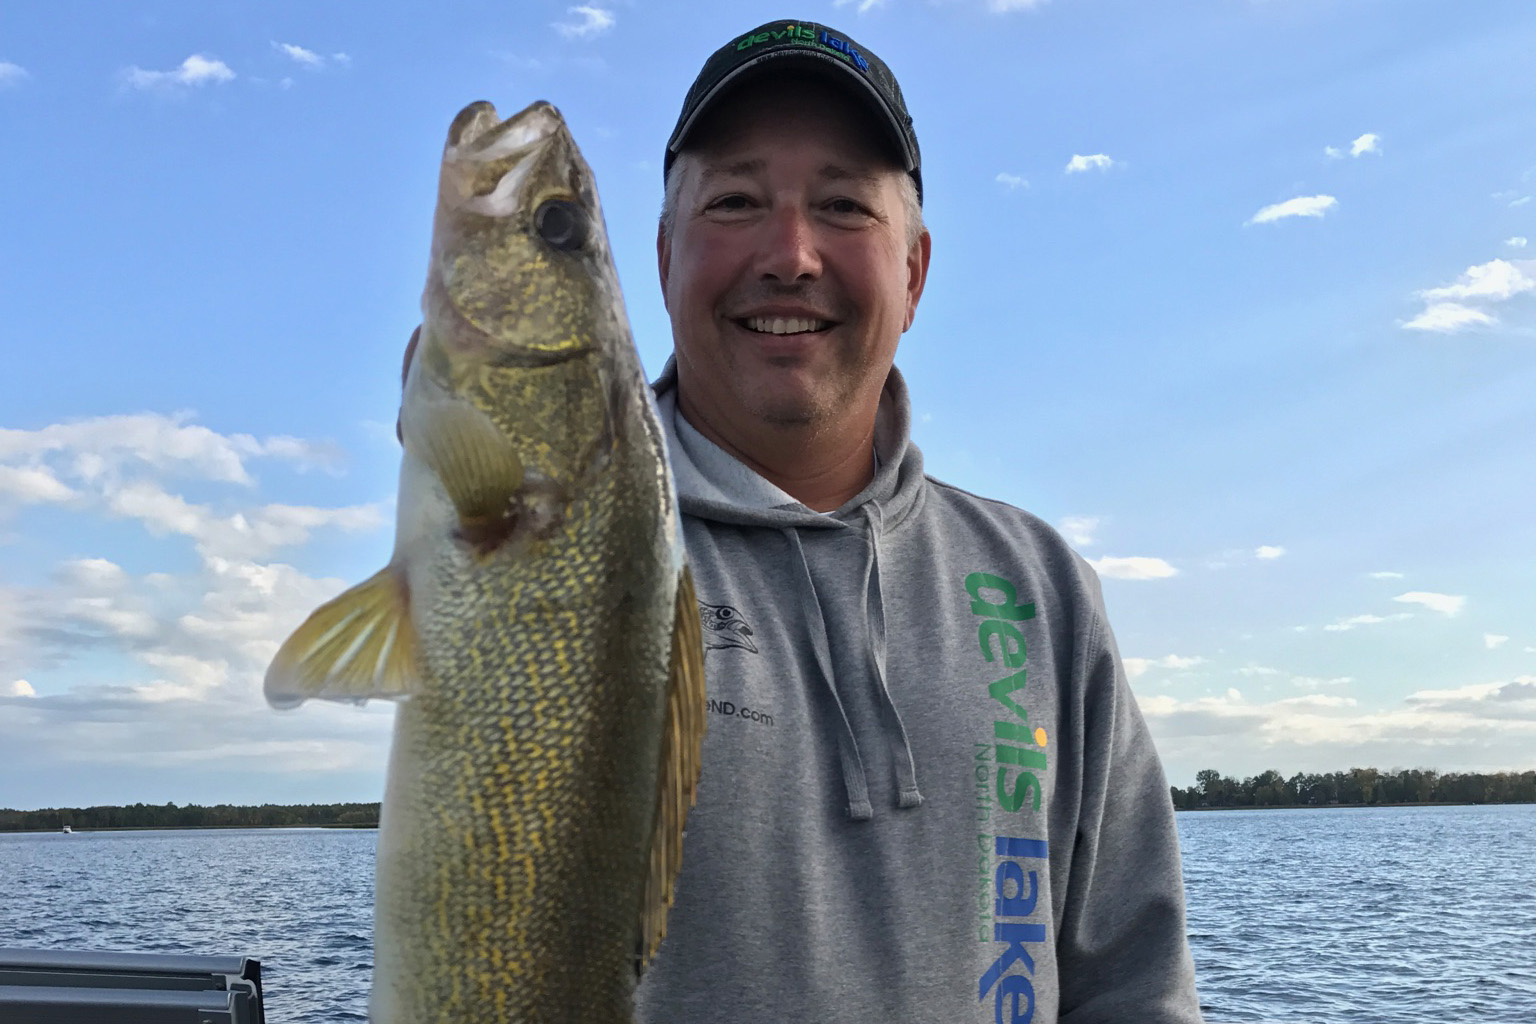 Angler on Devils Lake with Walleye